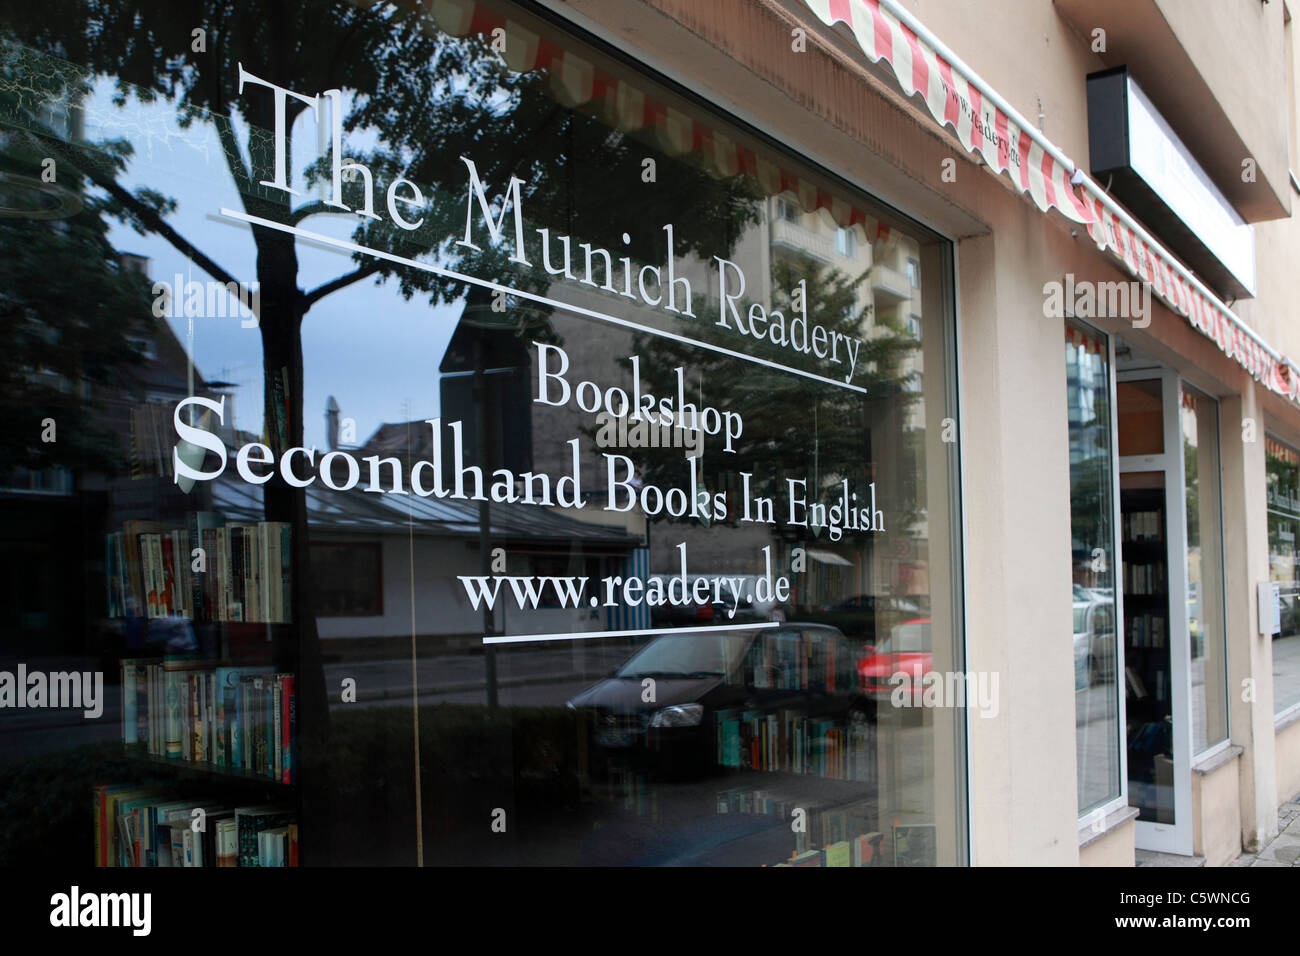 The window of The Munich Readery, a secondhand bookshop in Munich, Bavaria, Germany. Stock Photo